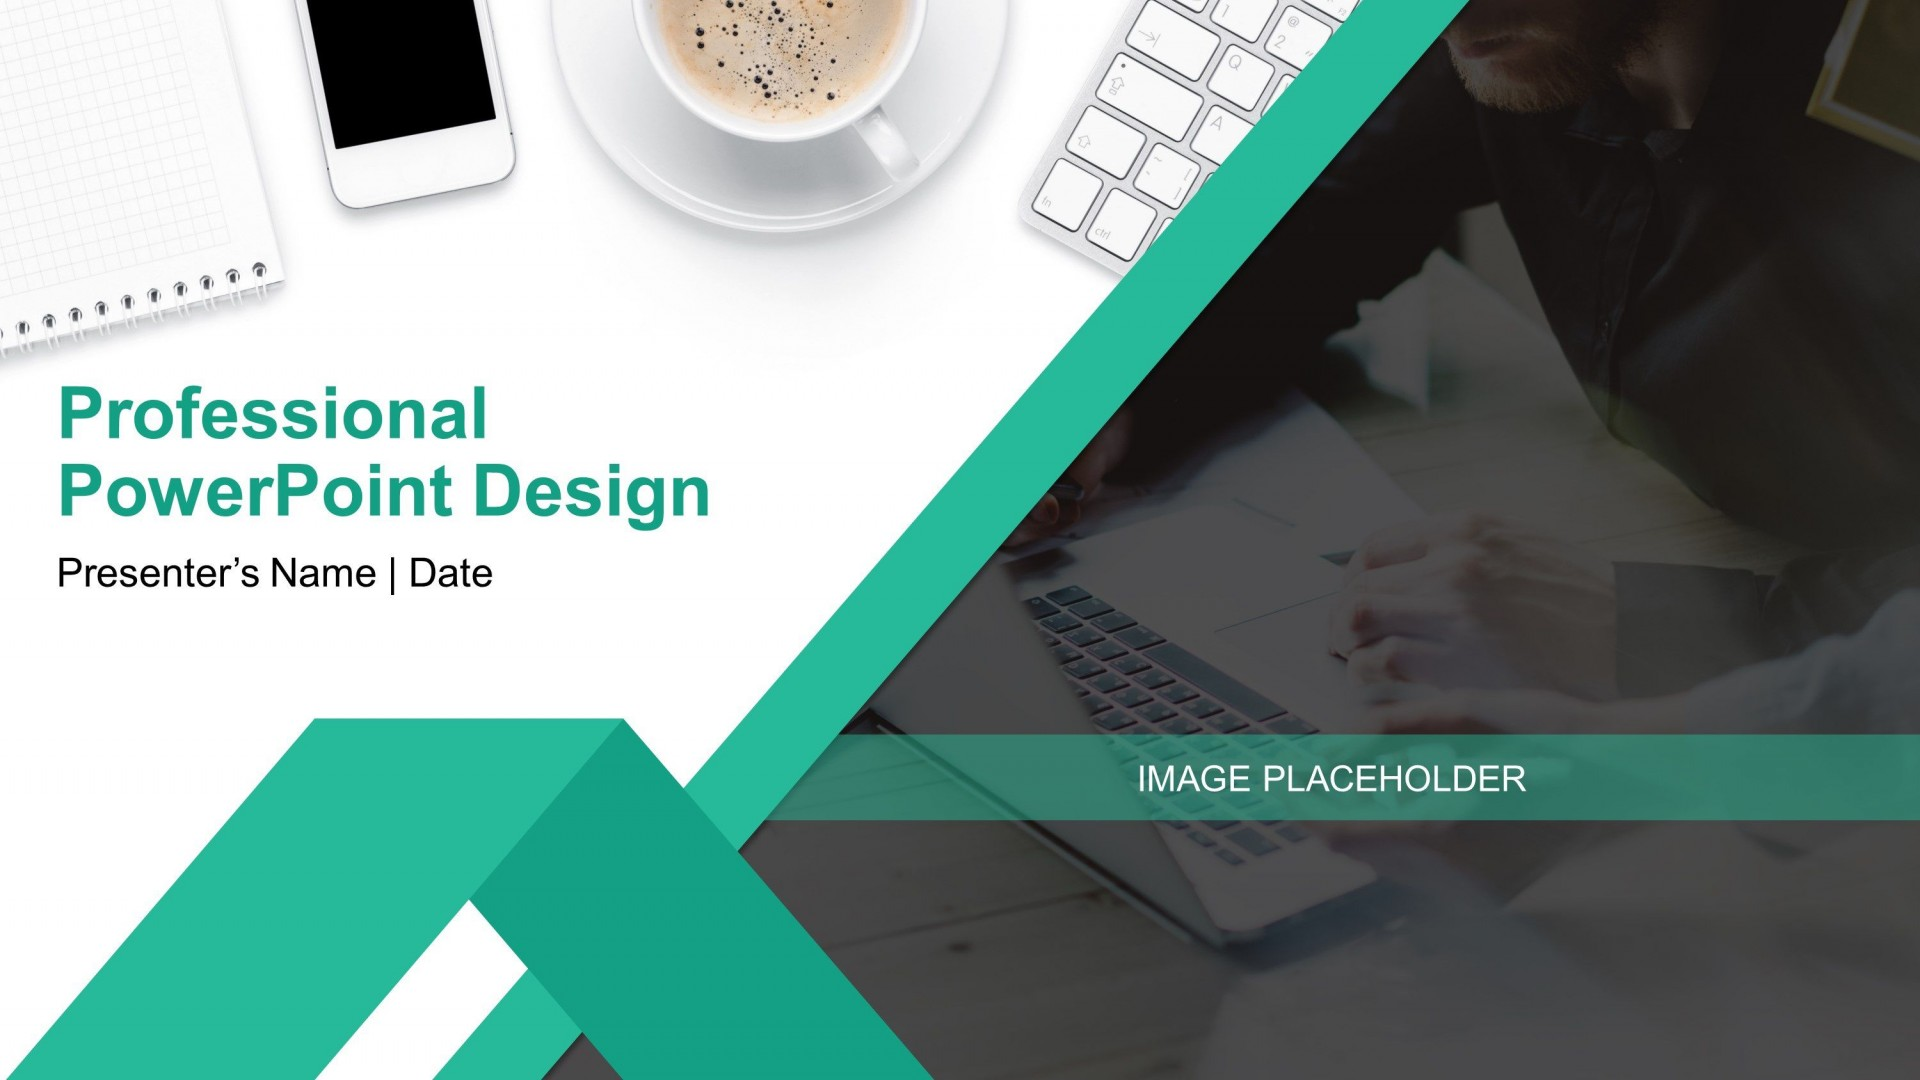 002 Unforgettable Ppt Slide Design Template Free Download Sample  One Resume Team Introduction Powerpoint Presentation1920